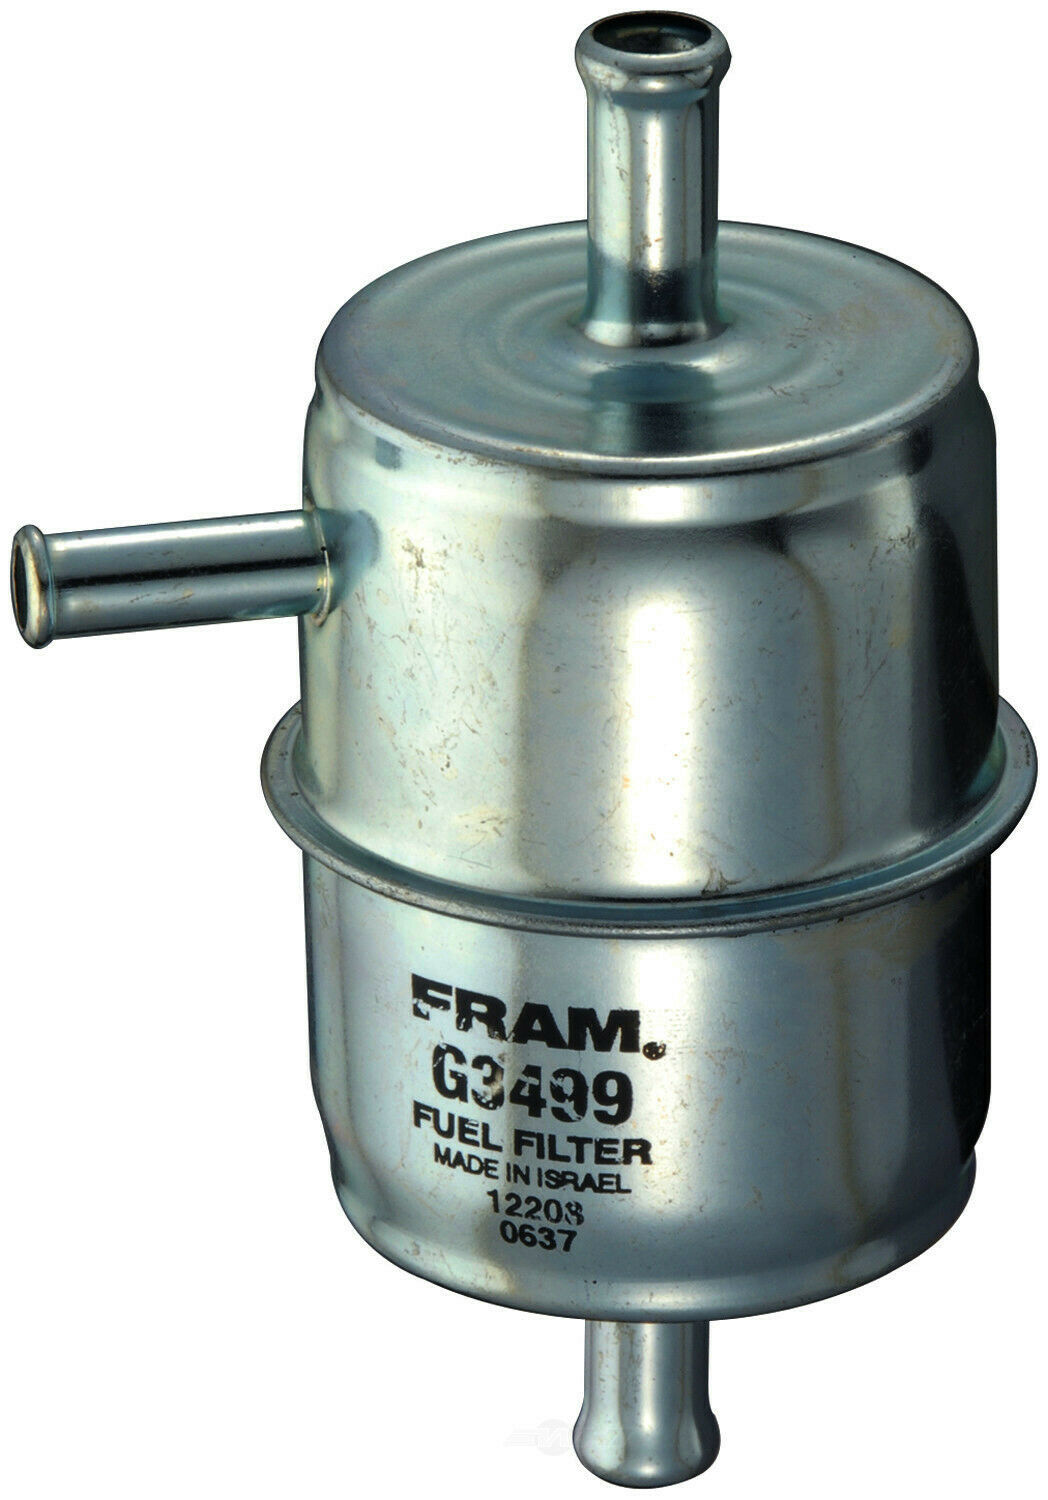 Fuel Filter FRAM G3499 1 of 1FREE Shipping ...